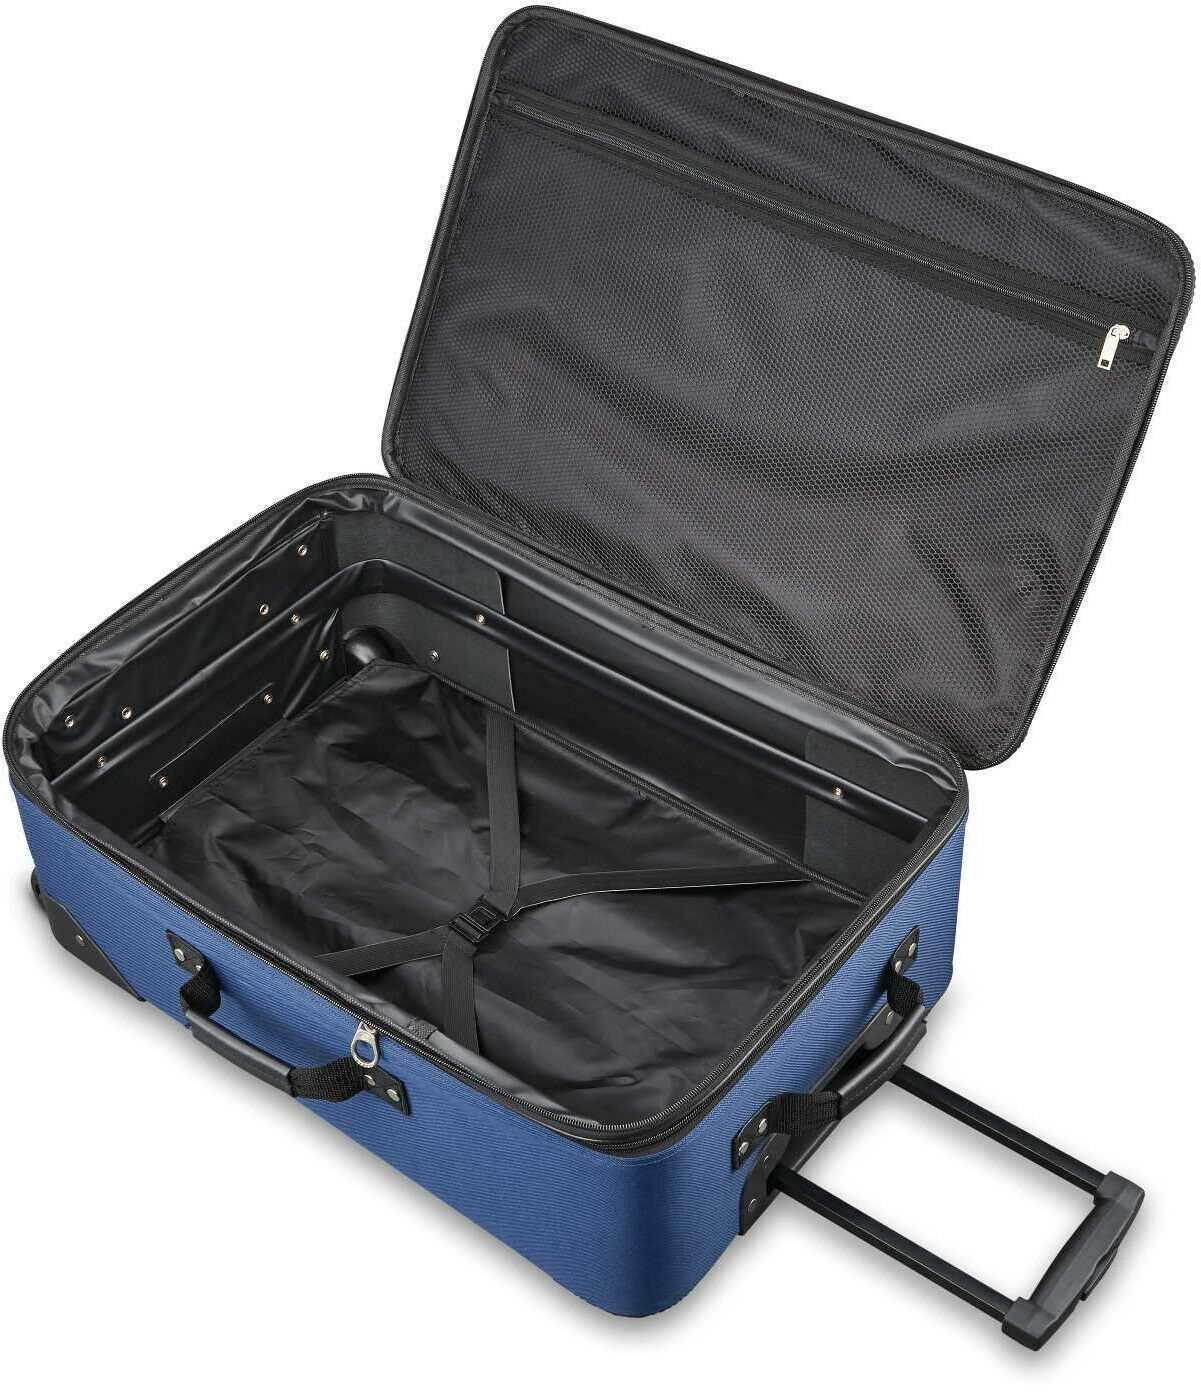 3-Piece Luggage Set Navy Travel Rolling Carry On Suitcase Wheels Boarding Bag